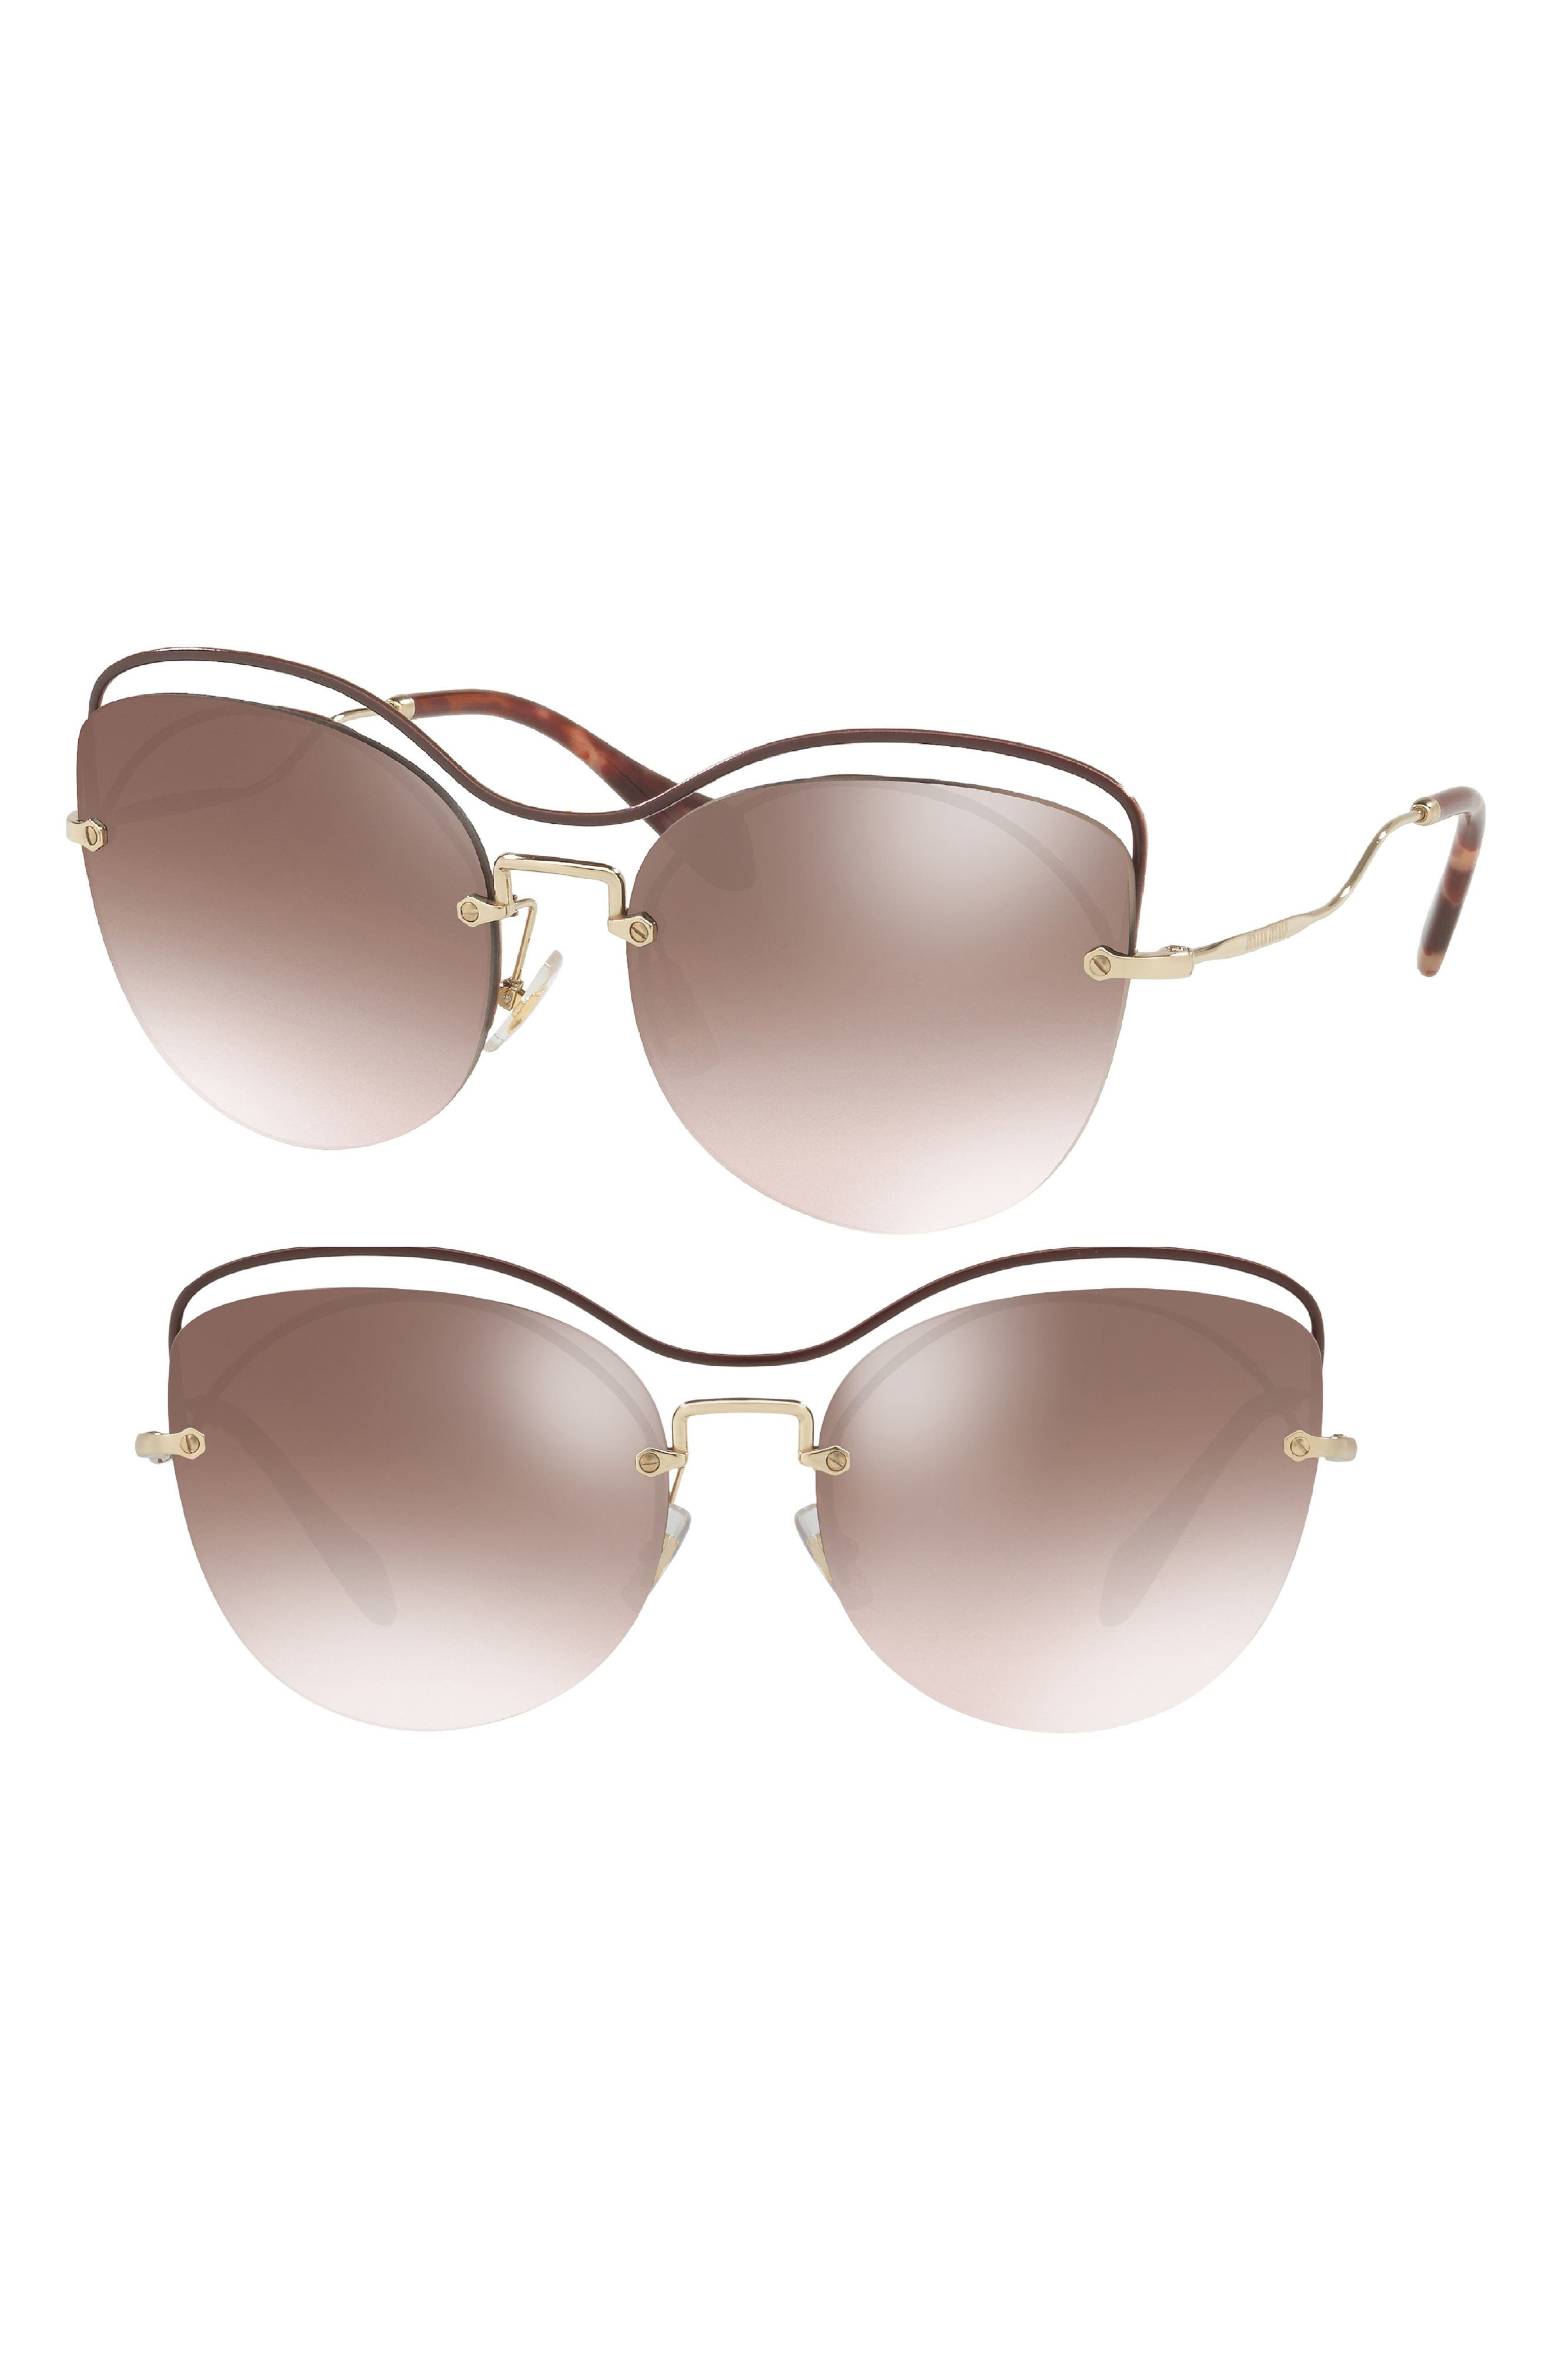 60mm Mirrored Cat Eye Sunglasses,                             Main thumbnail 1, color,                             BROWN